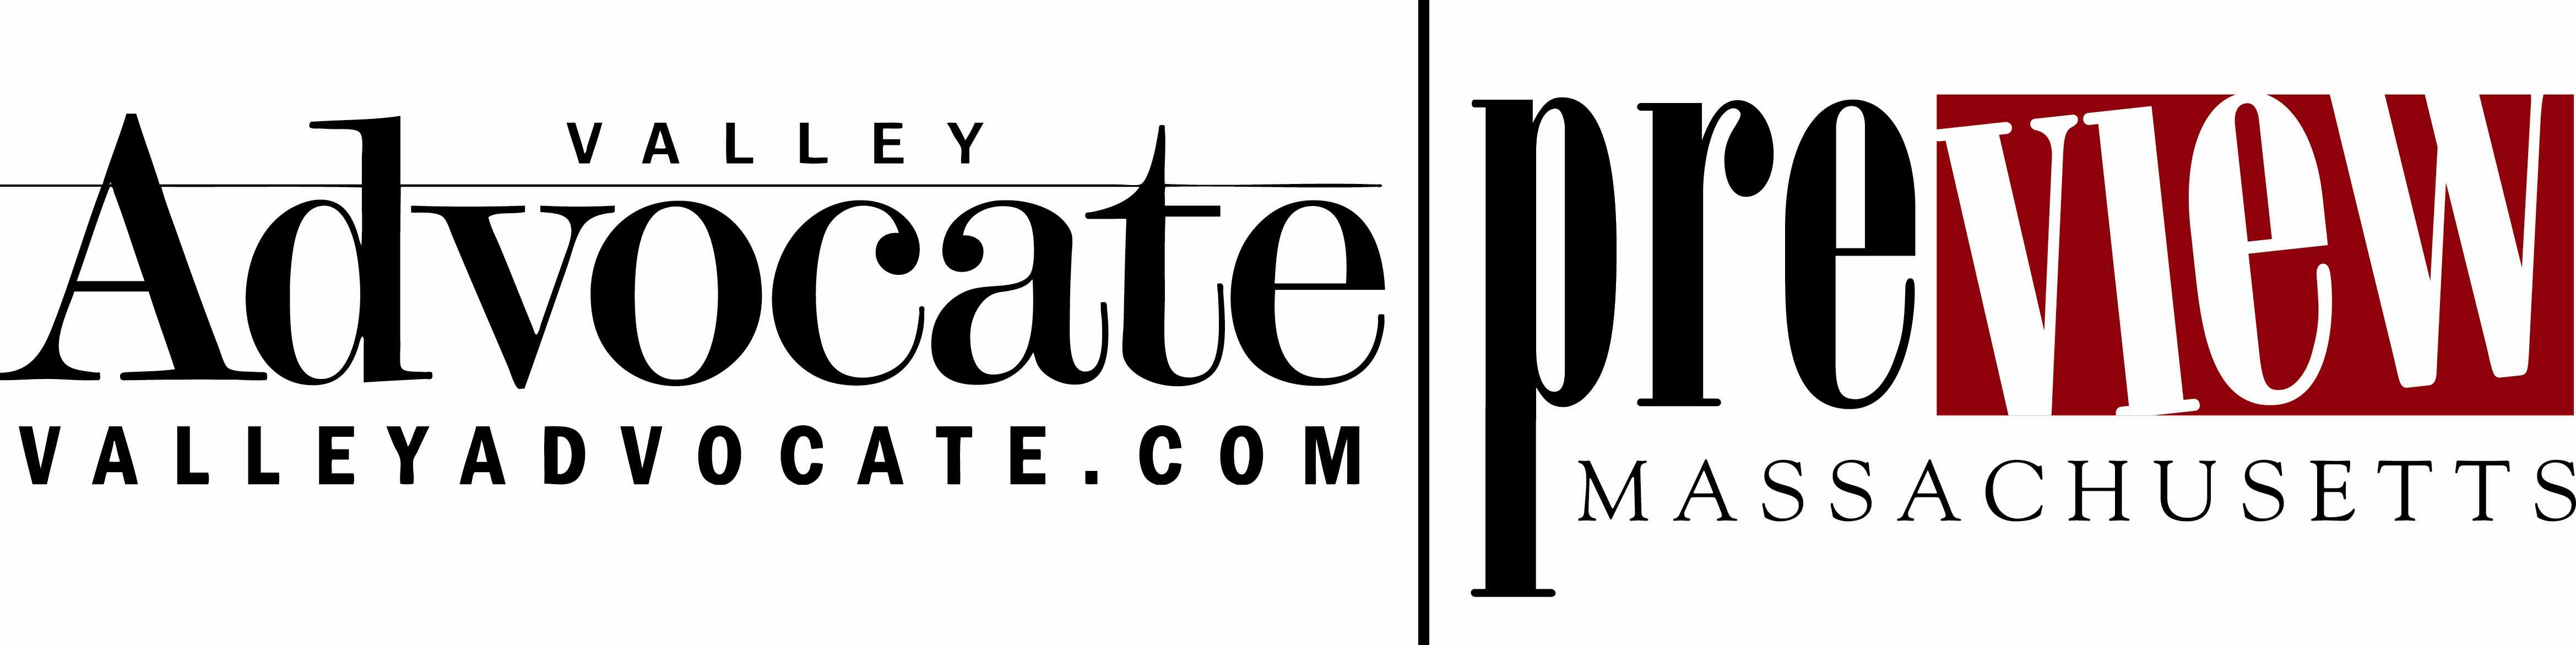 Valley Advocate & Preview Mag logo